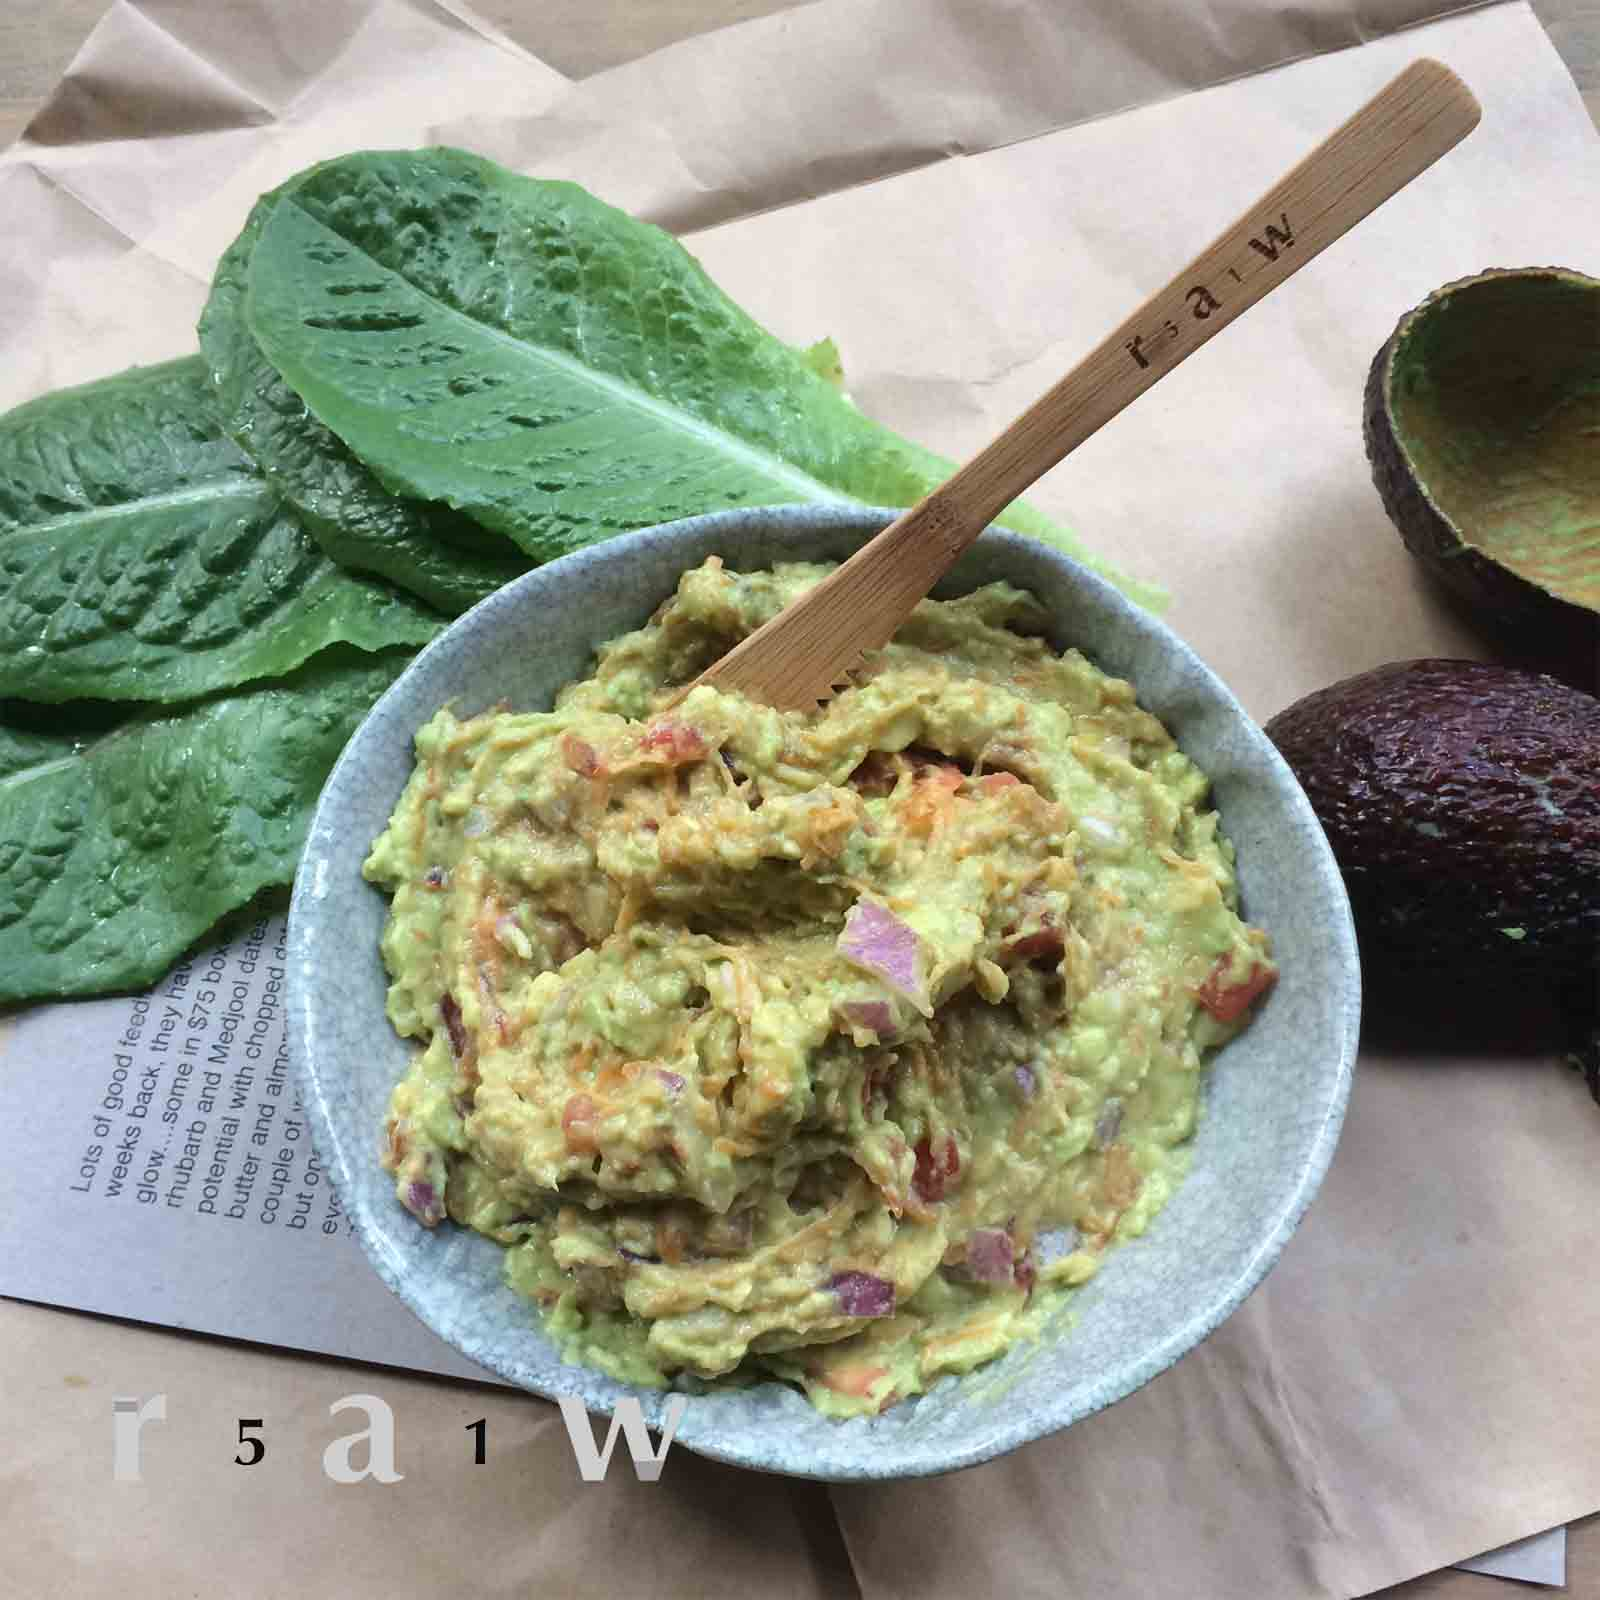 raw-food-diet-not-just-guac-guacamole-51raw